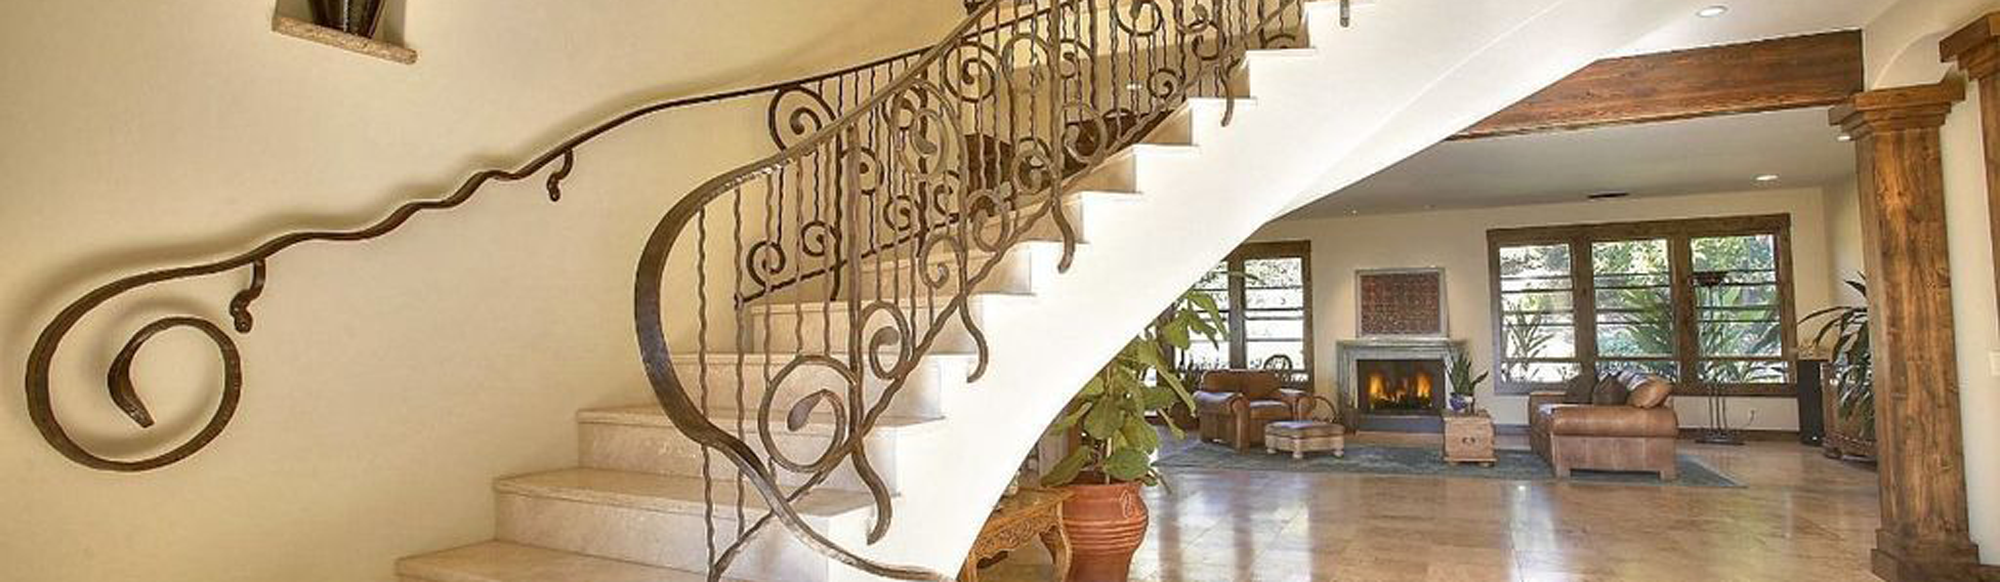 Staircase featured image